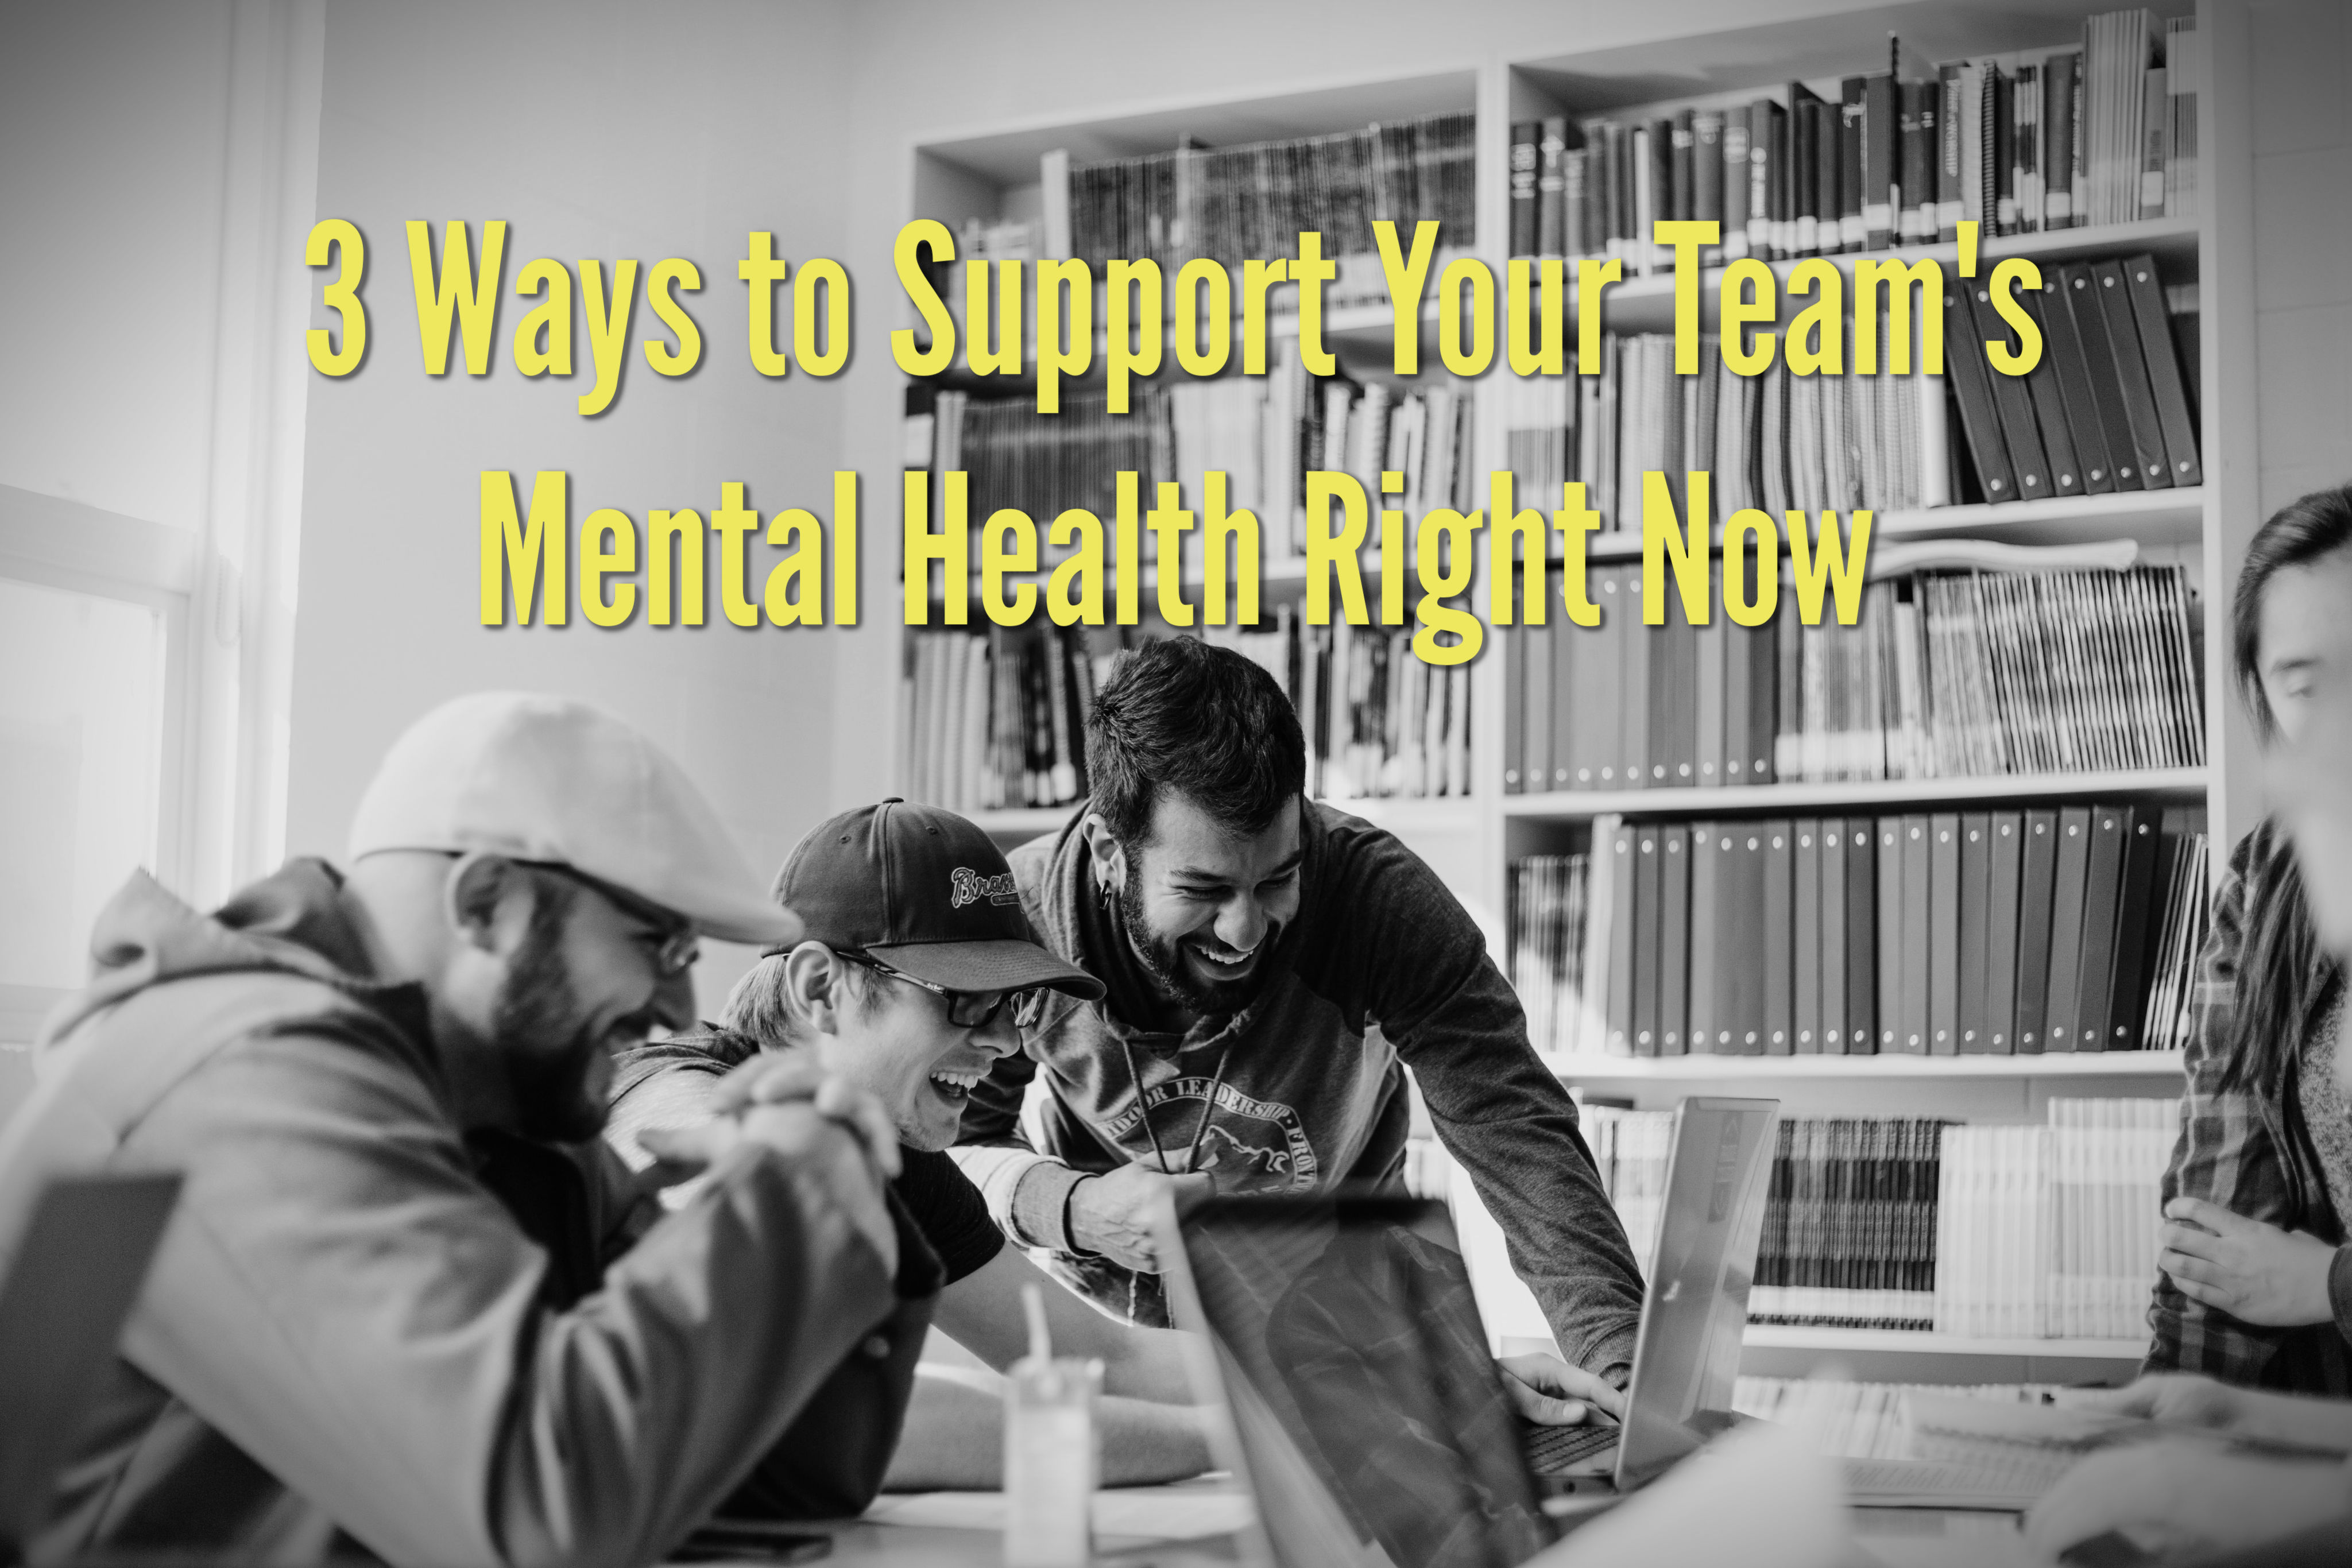 3 Ways to Support Your Team's Mental Health Right Now